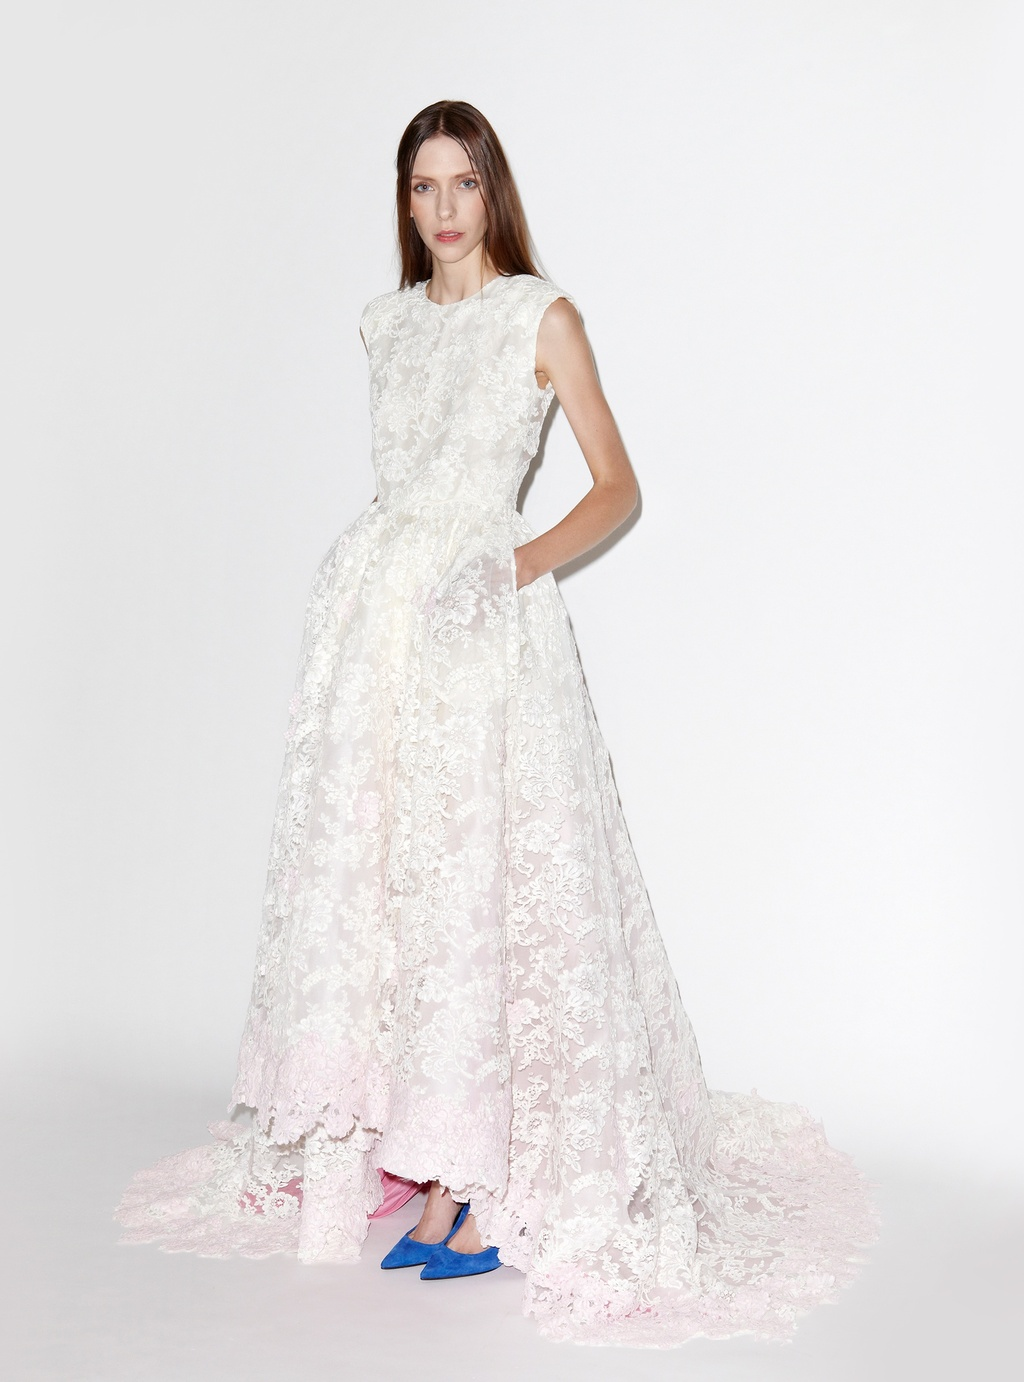 Lace-wedding-dress-with-pale-pink-underlay.full